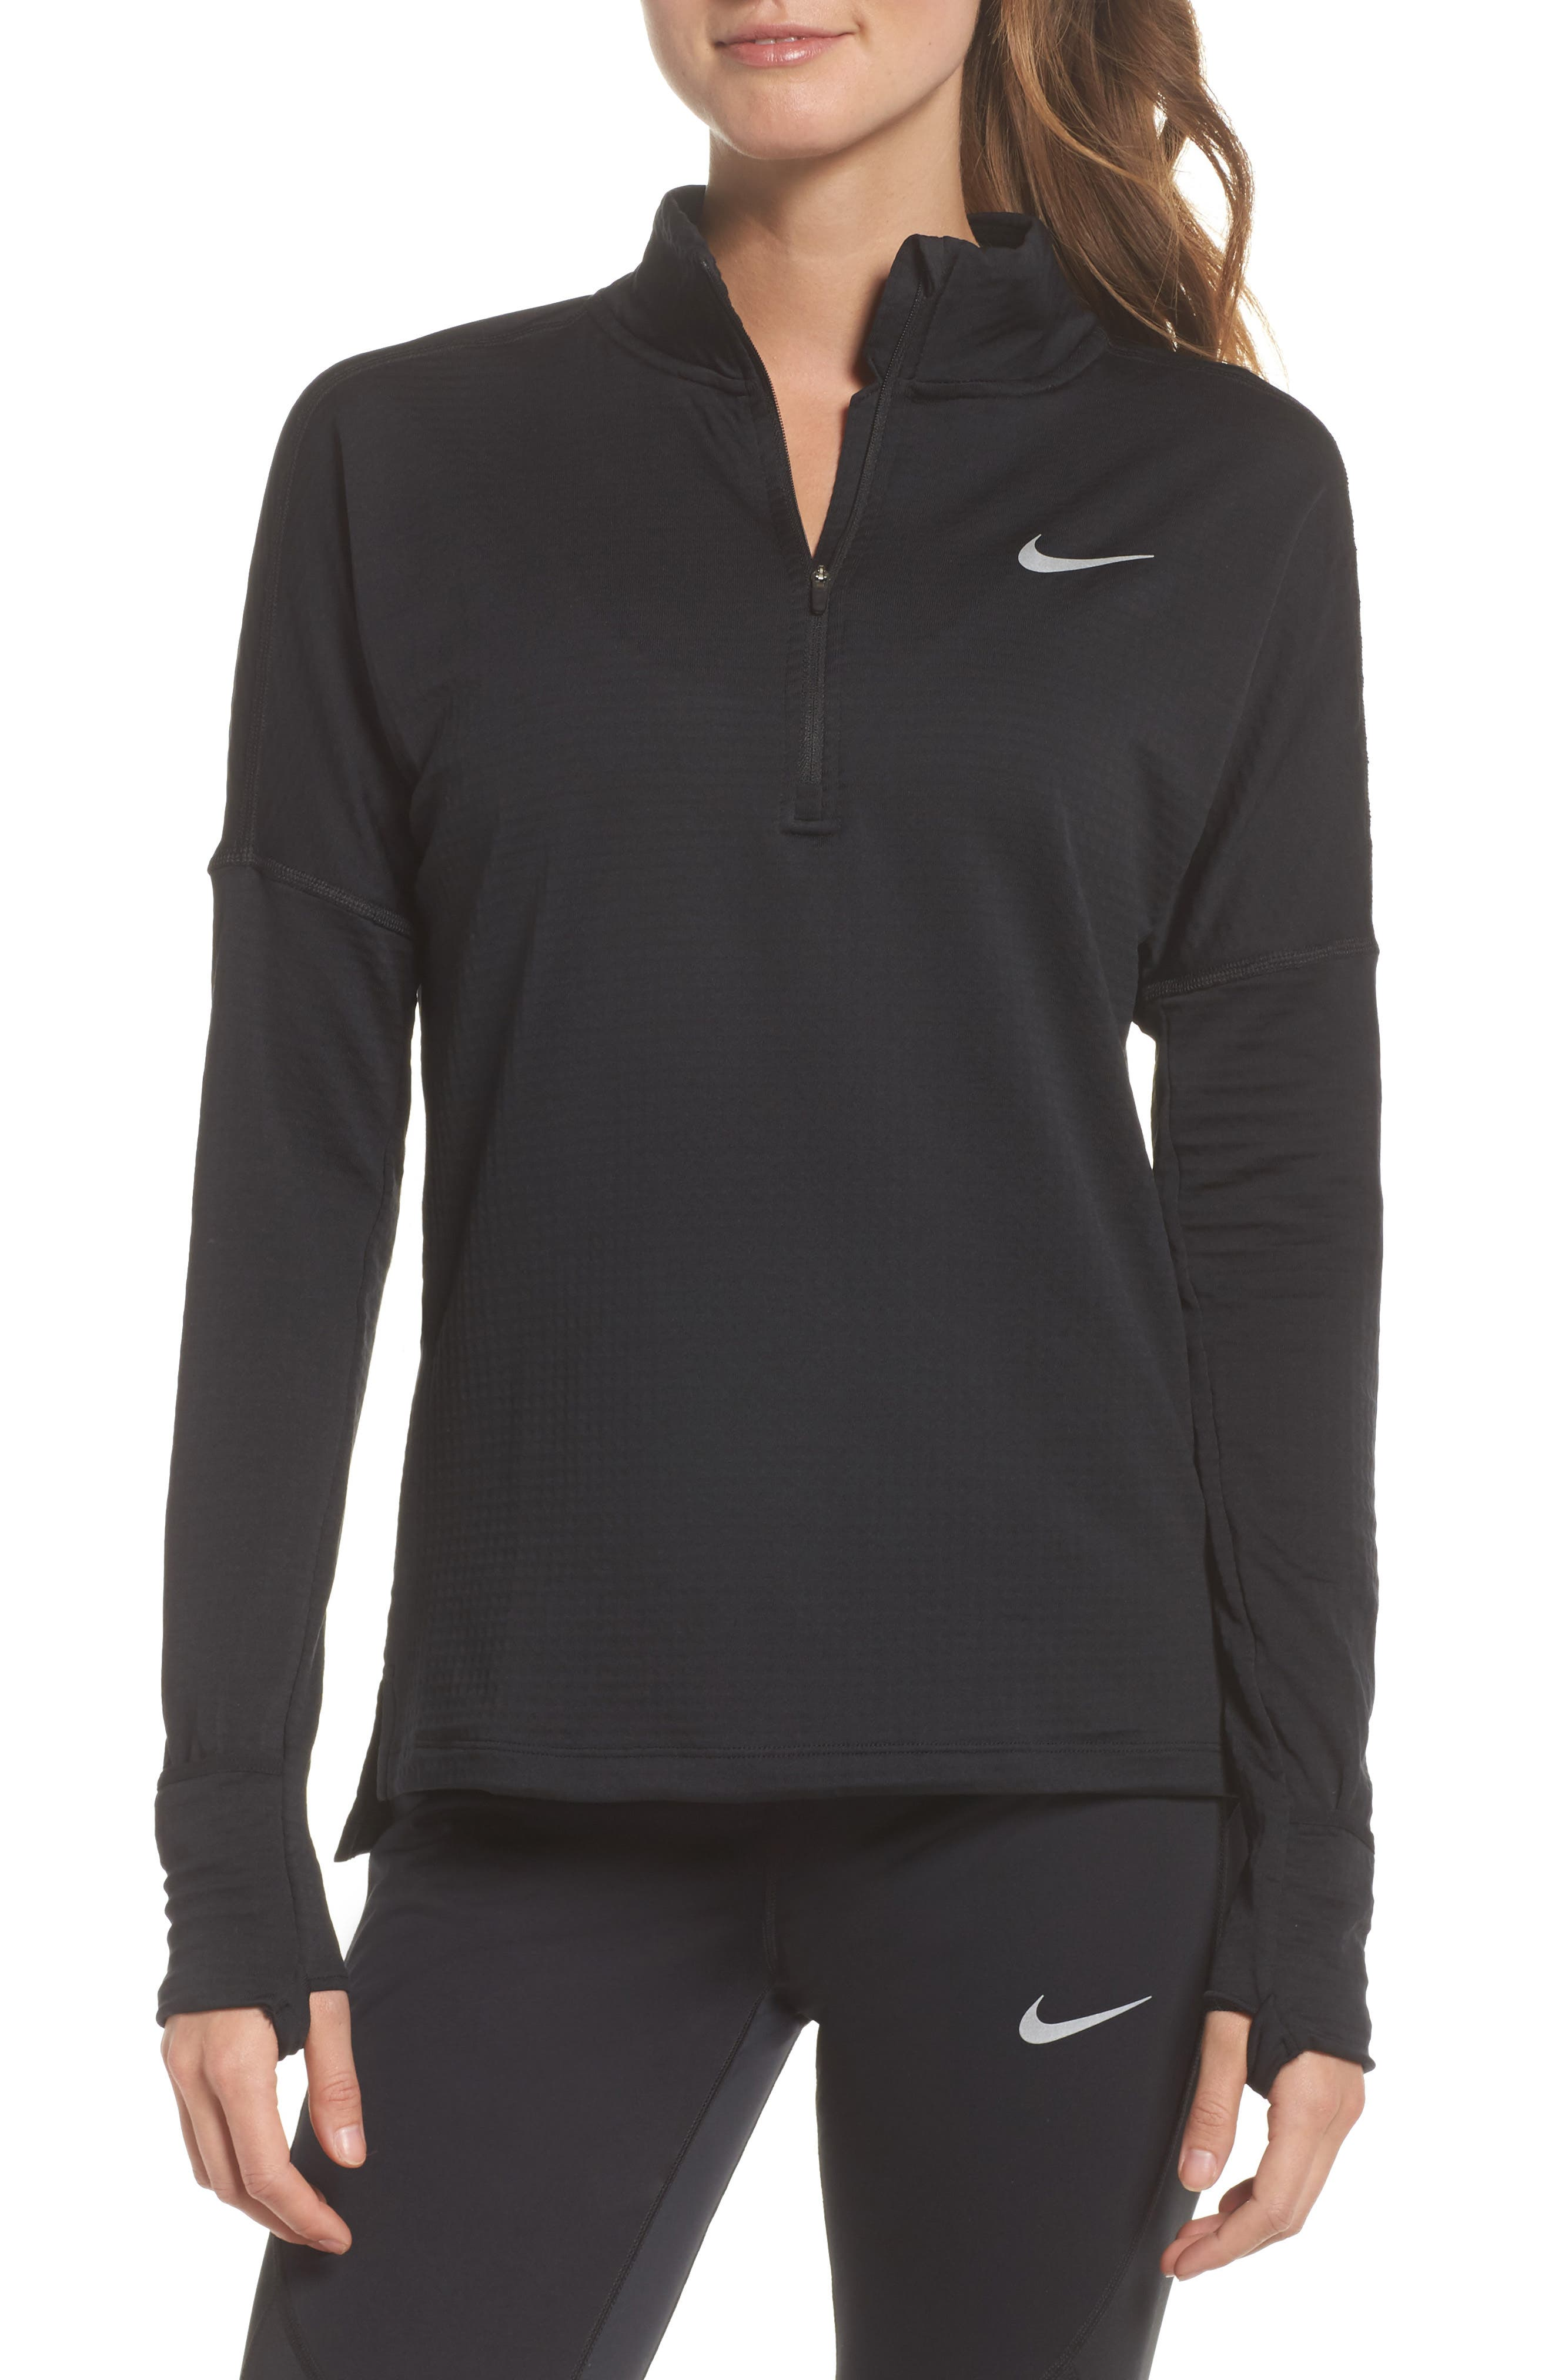 Main Image - Nike Therma Sphere Element Running Pullover Top